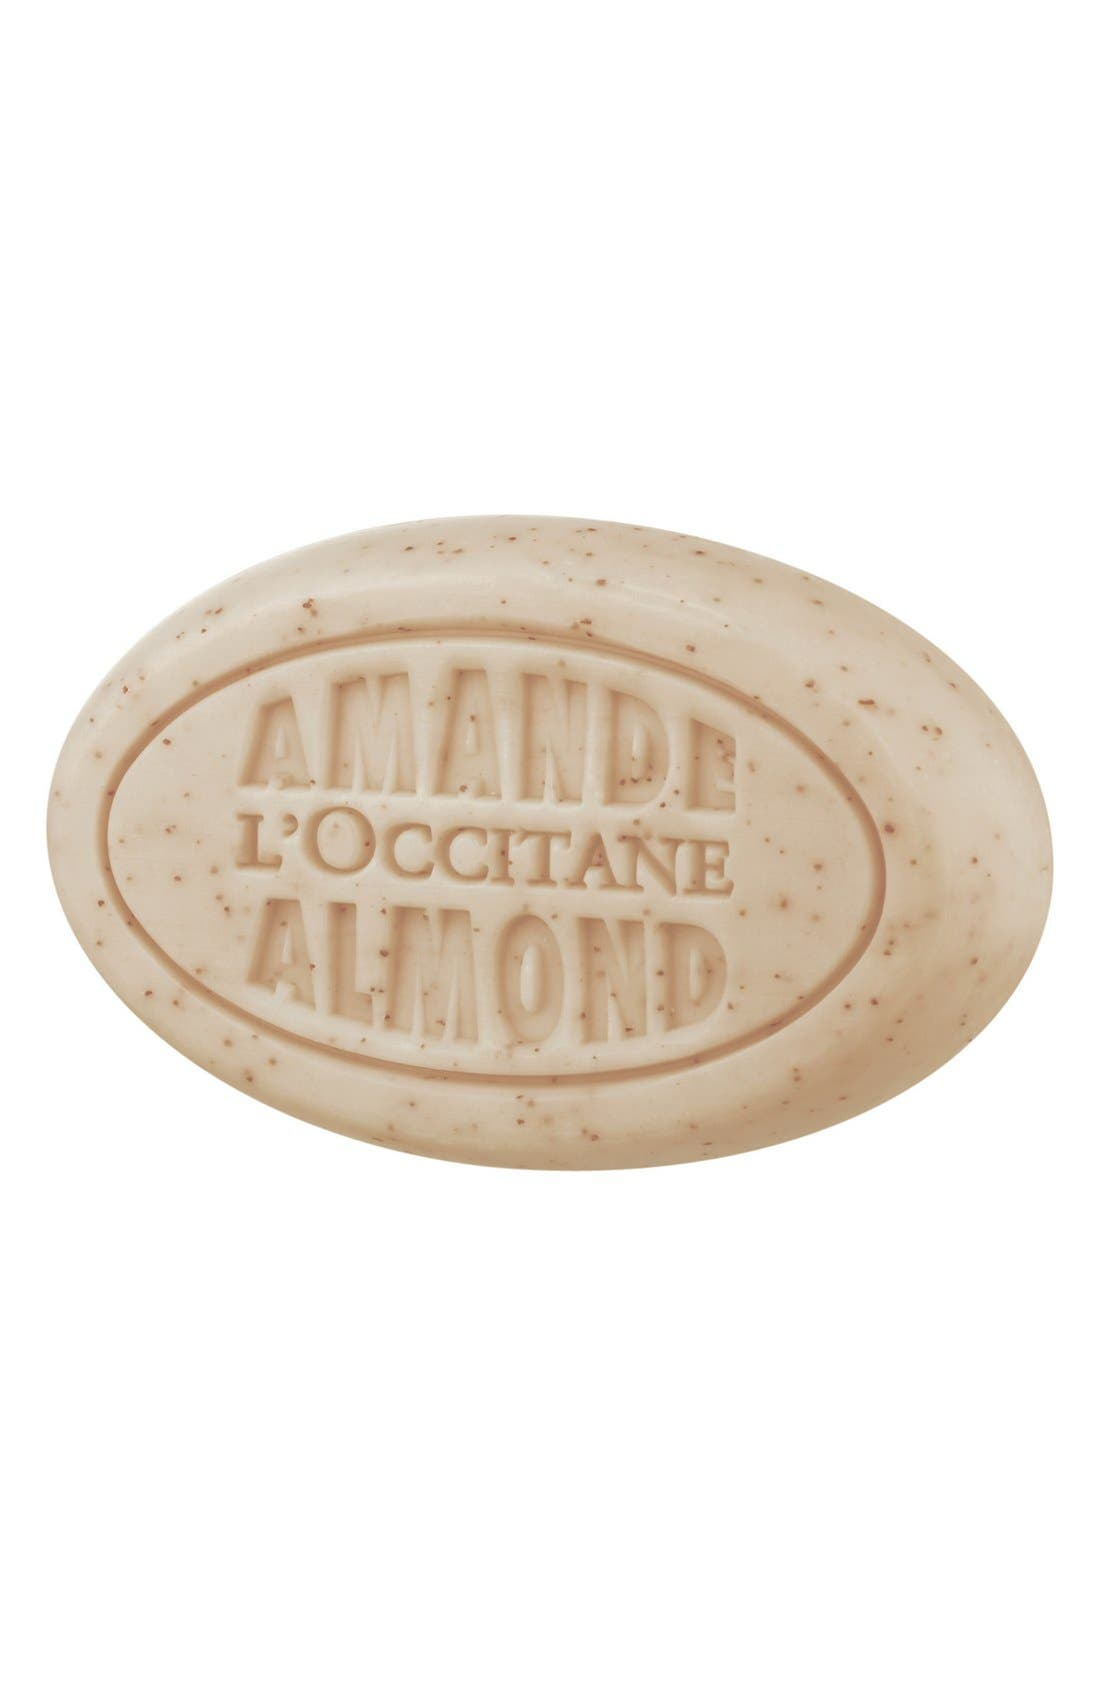 L'Occitane 'Almond Delicious' Soap